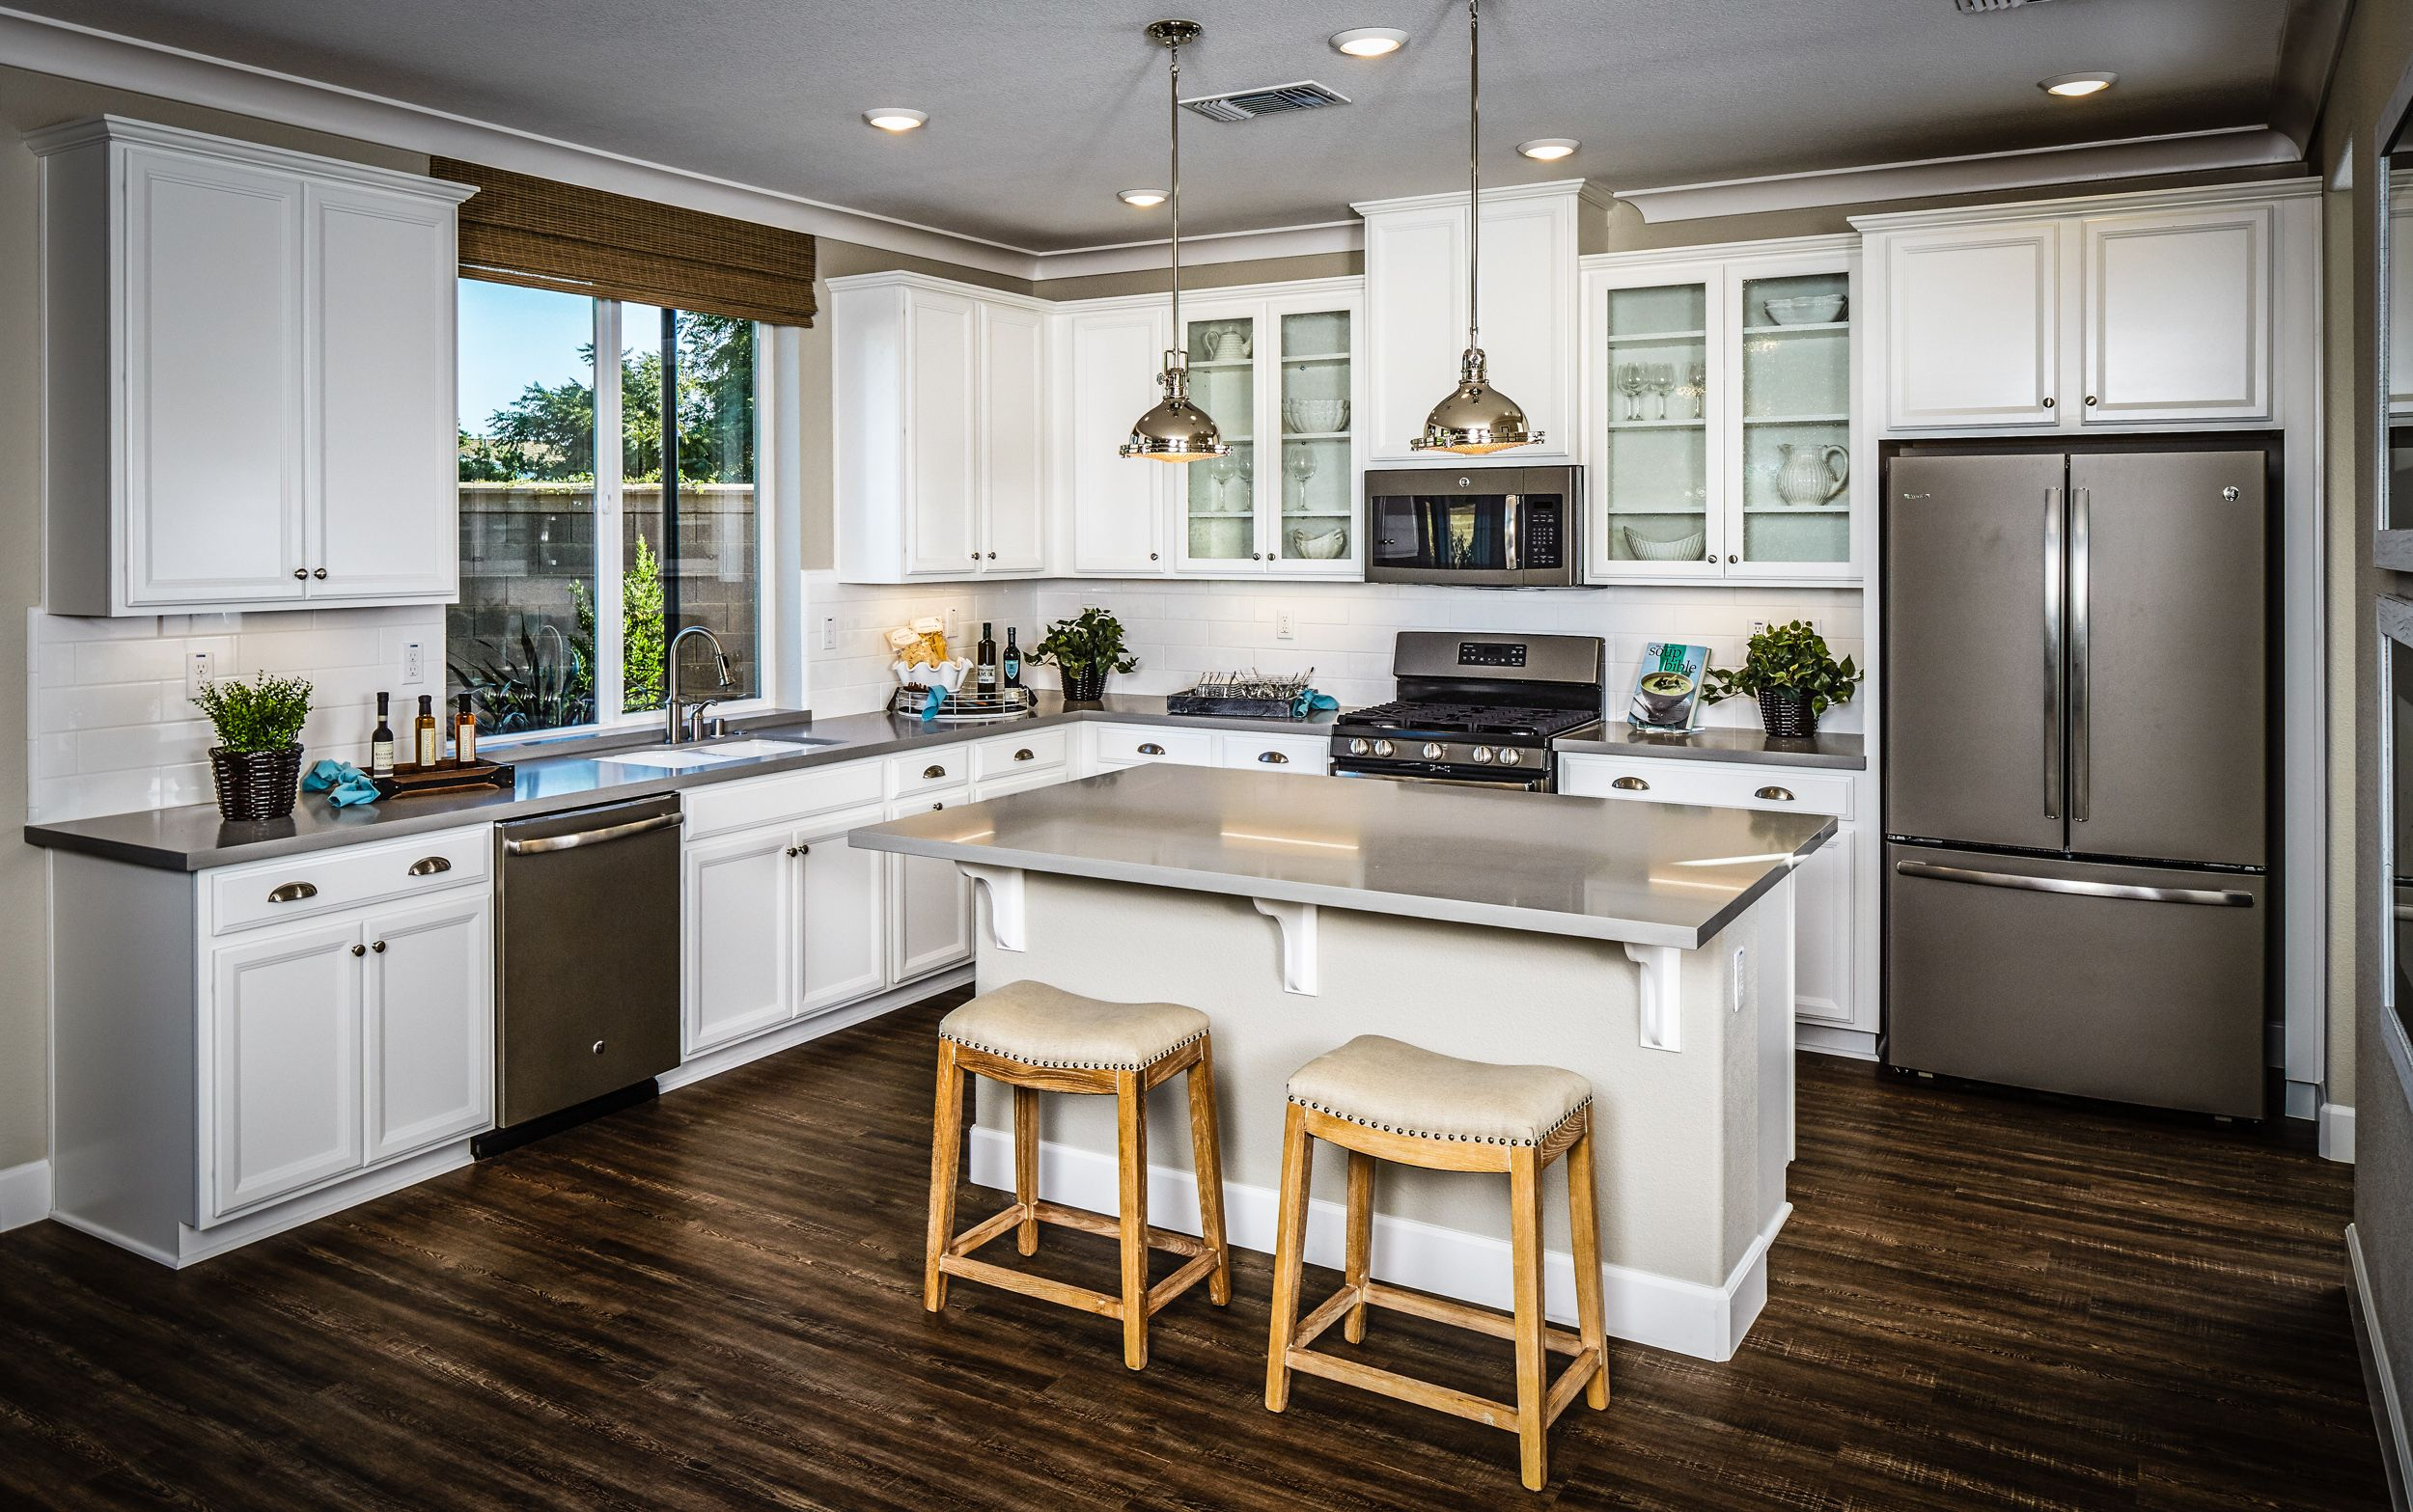 Explore Your Culinary Creativity Kitchen Sacramento California Sacrealestate Newhomes Kitchen Design New Kitchen California Living